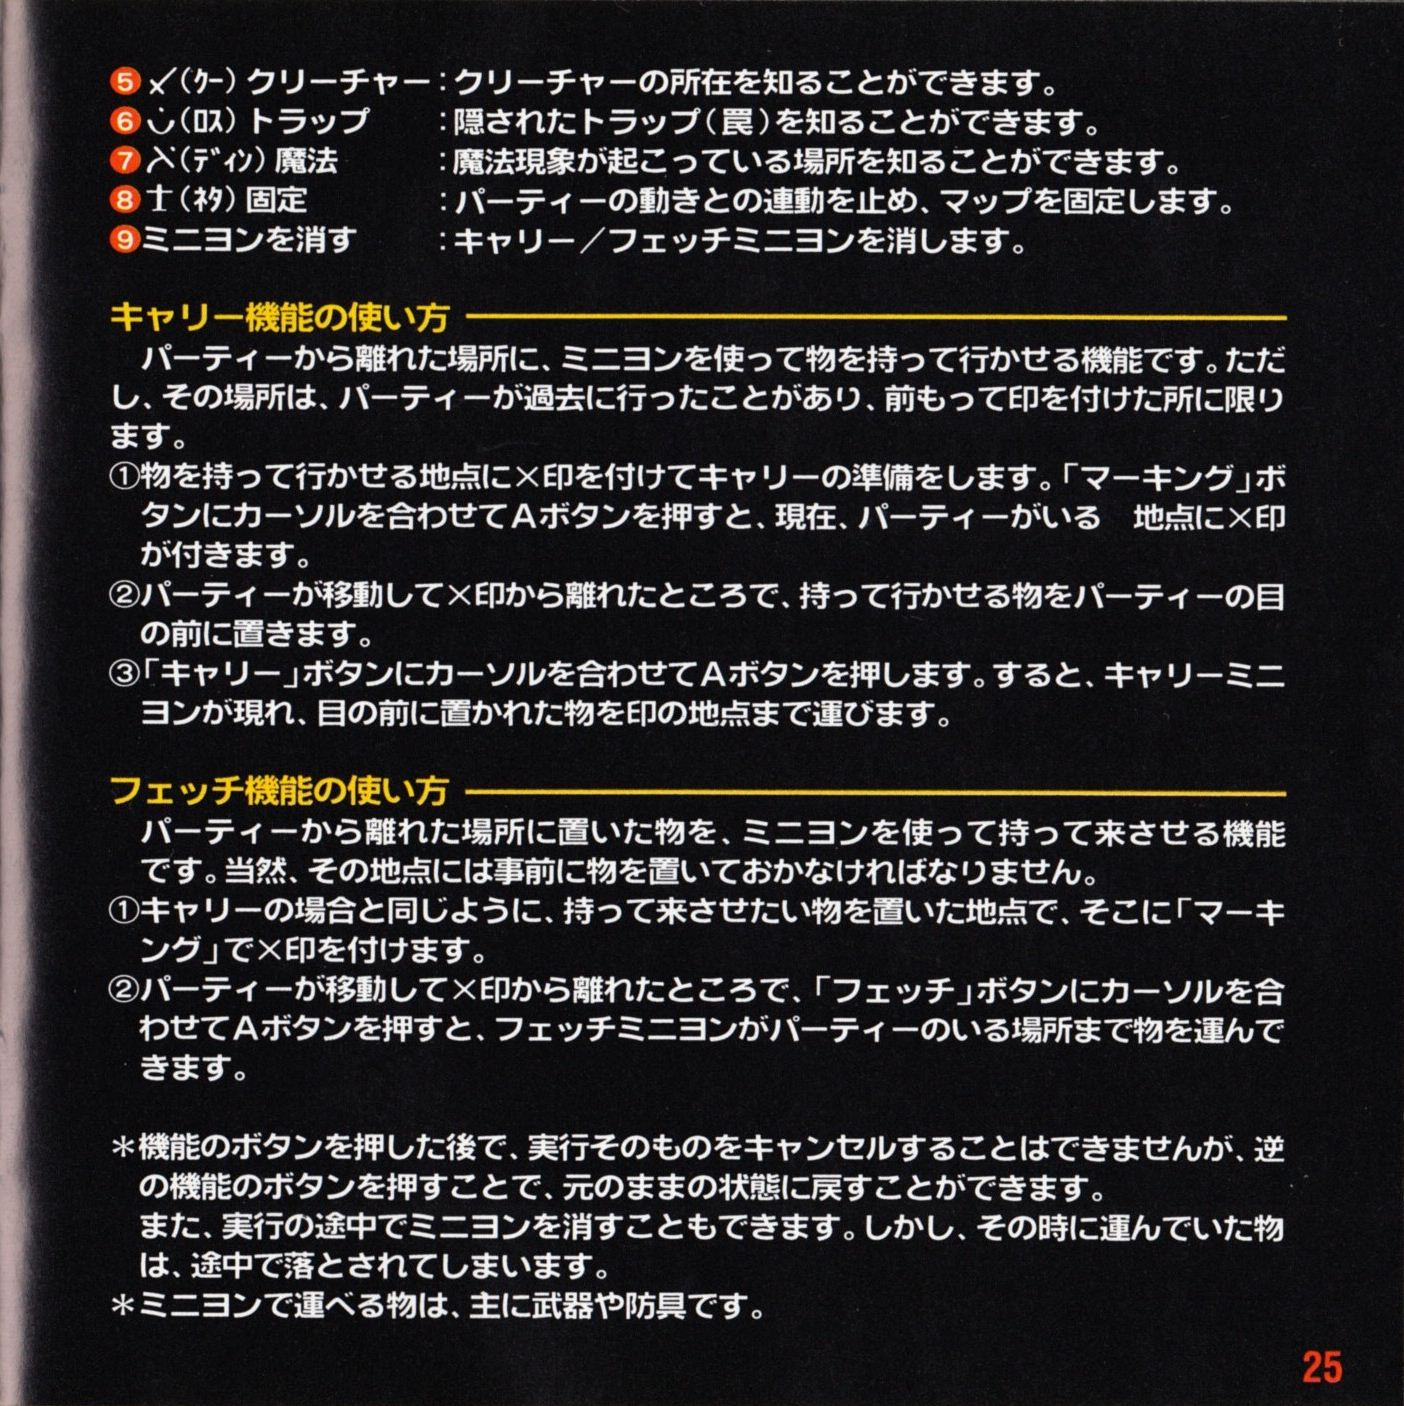 Game - Dungeon Master II - JP - Mega CD - Booklet - Page 027 - Scan